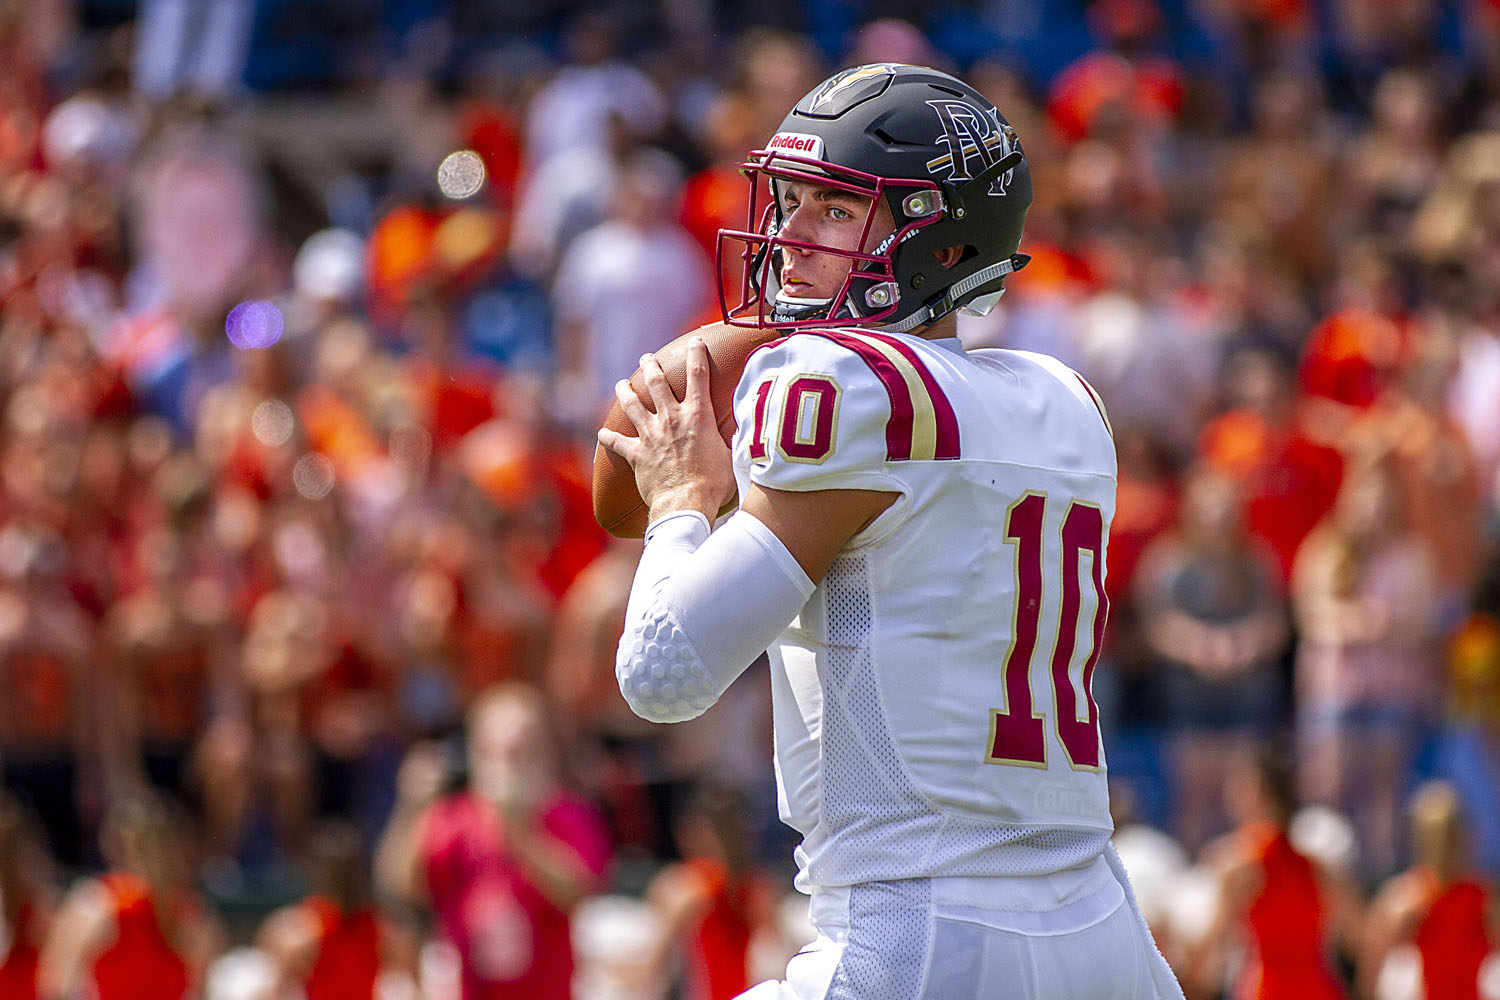 Bo Nix set to join one of the most elite clubs in Alabama high school history.